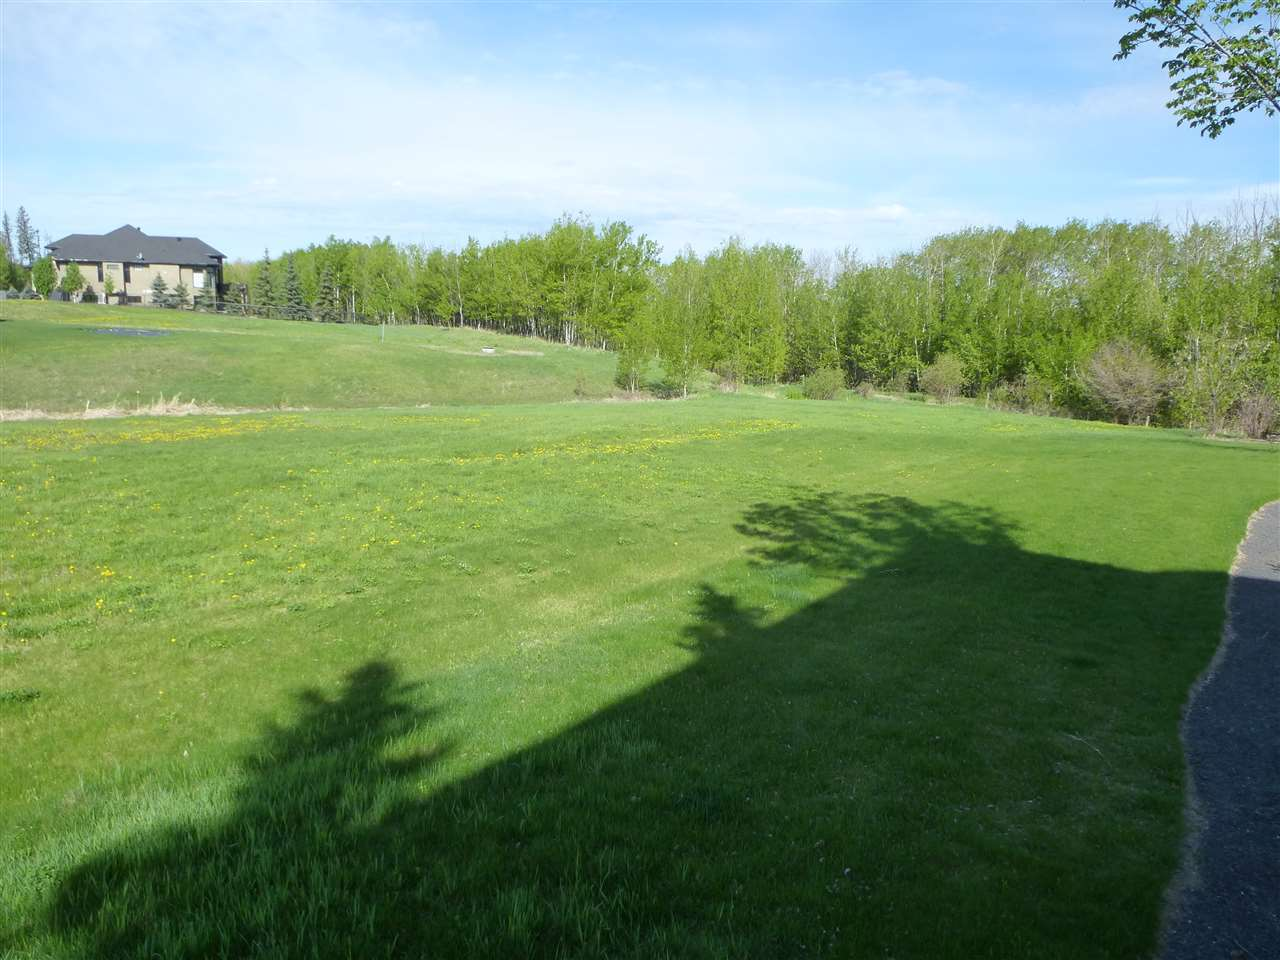 Photo 10: 60 53217 RGE RD 263 Road: Rural Parkland County Rural Land/Vacant Lot for sale : MLS(r) # E4065068